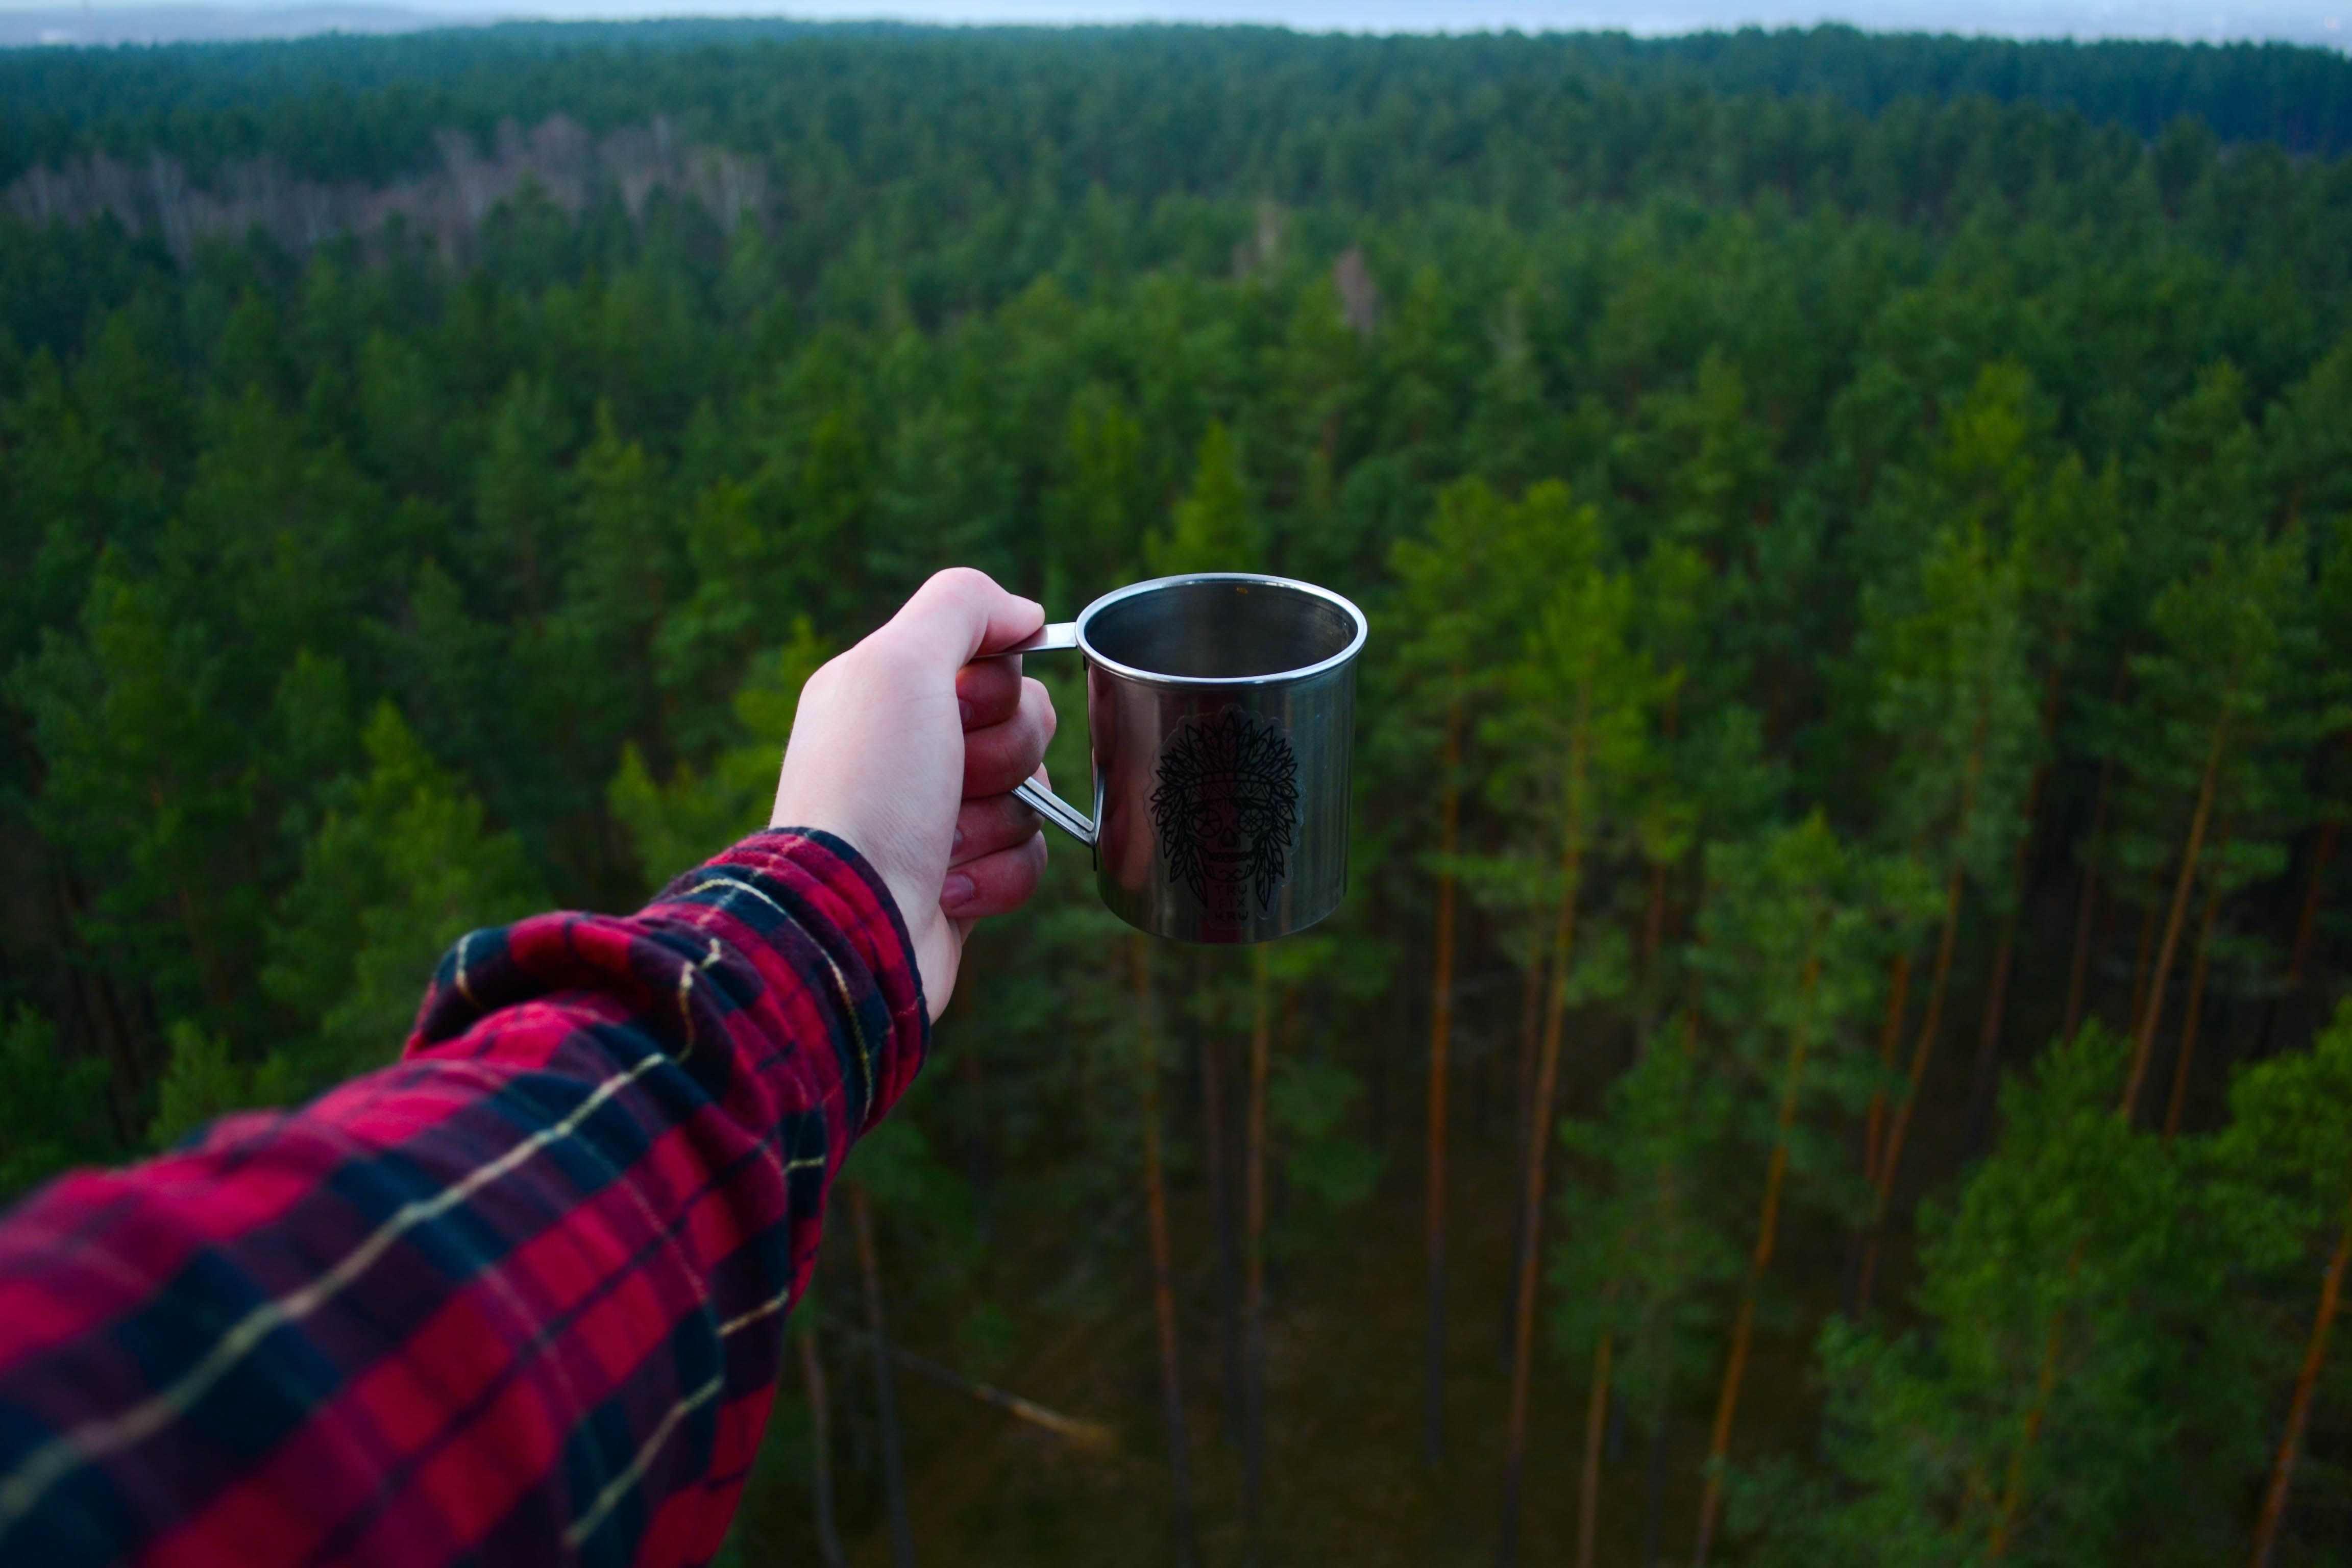 An outstretched arm of a person in a flannel shirt holding a mug with a view on a green forest